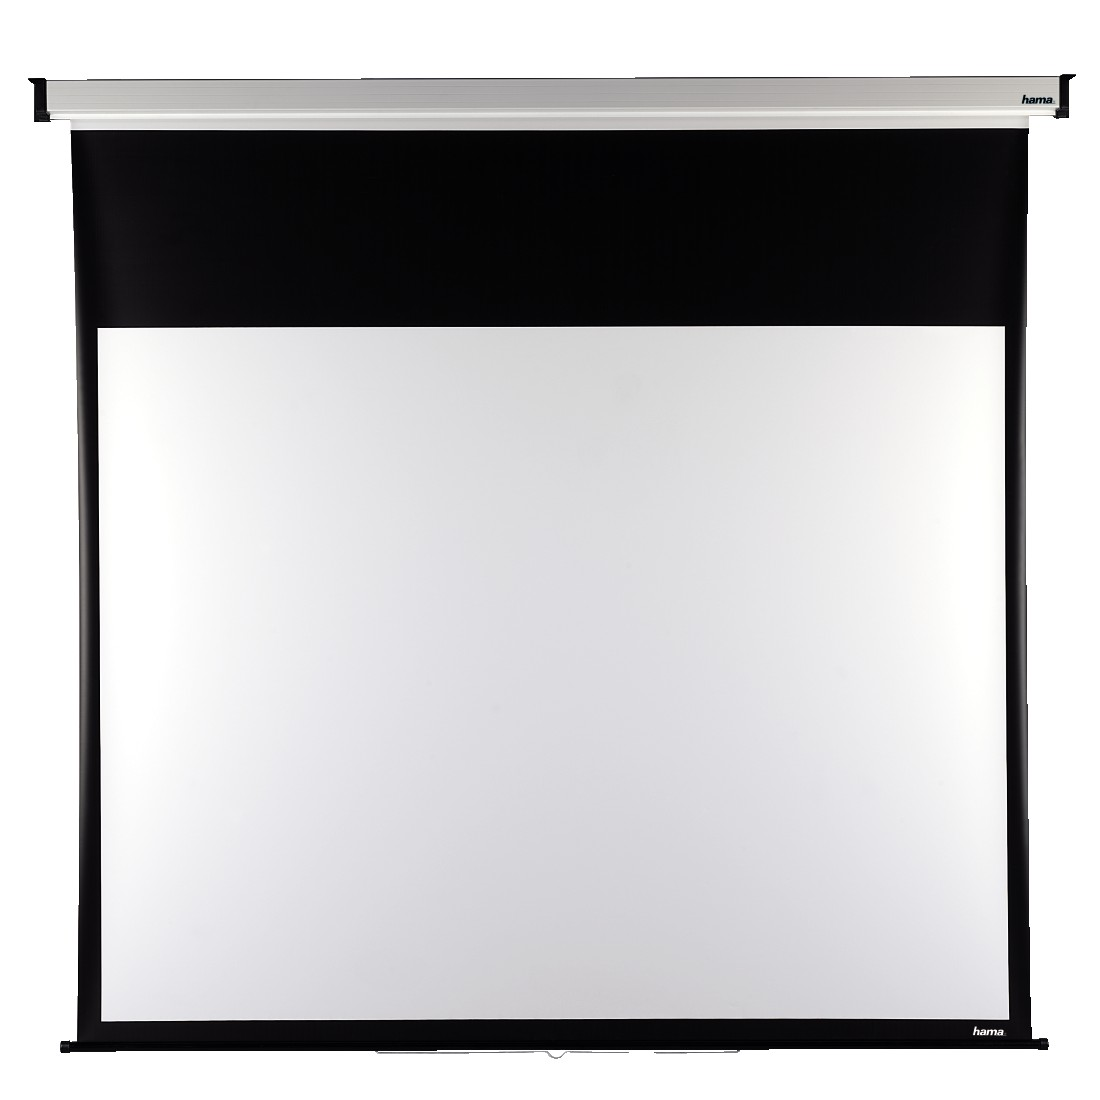 abx High-Res Image - Hama, Roller Projection Screen, 240 x 195 cm, 4:3